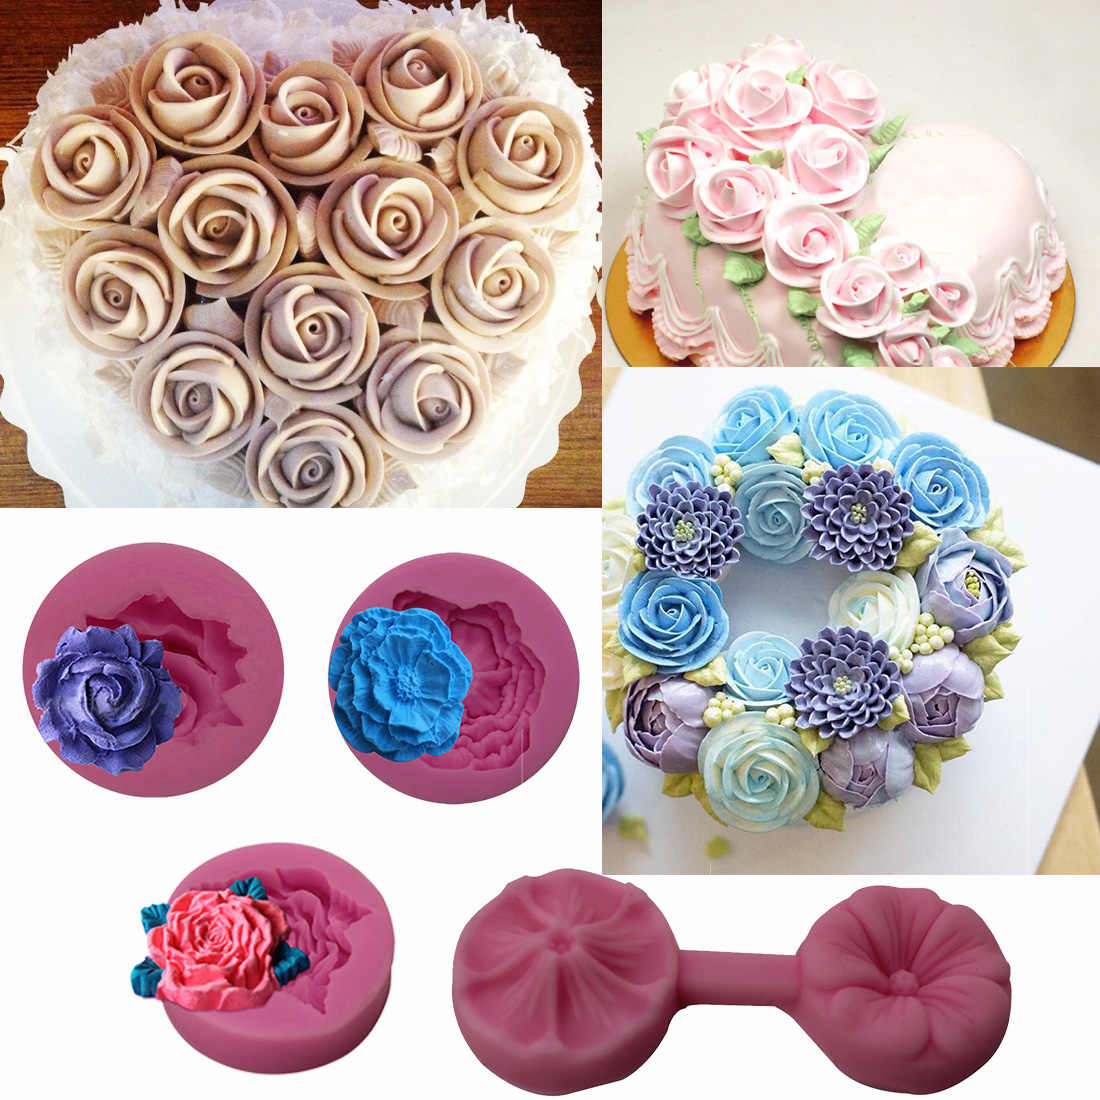 Rose Flower Silicone Mold Sugarcraft Embossed Fondant Cake Decorating Tools Fimo Clay Candy Jelly Chocolate Gumpaste Mold